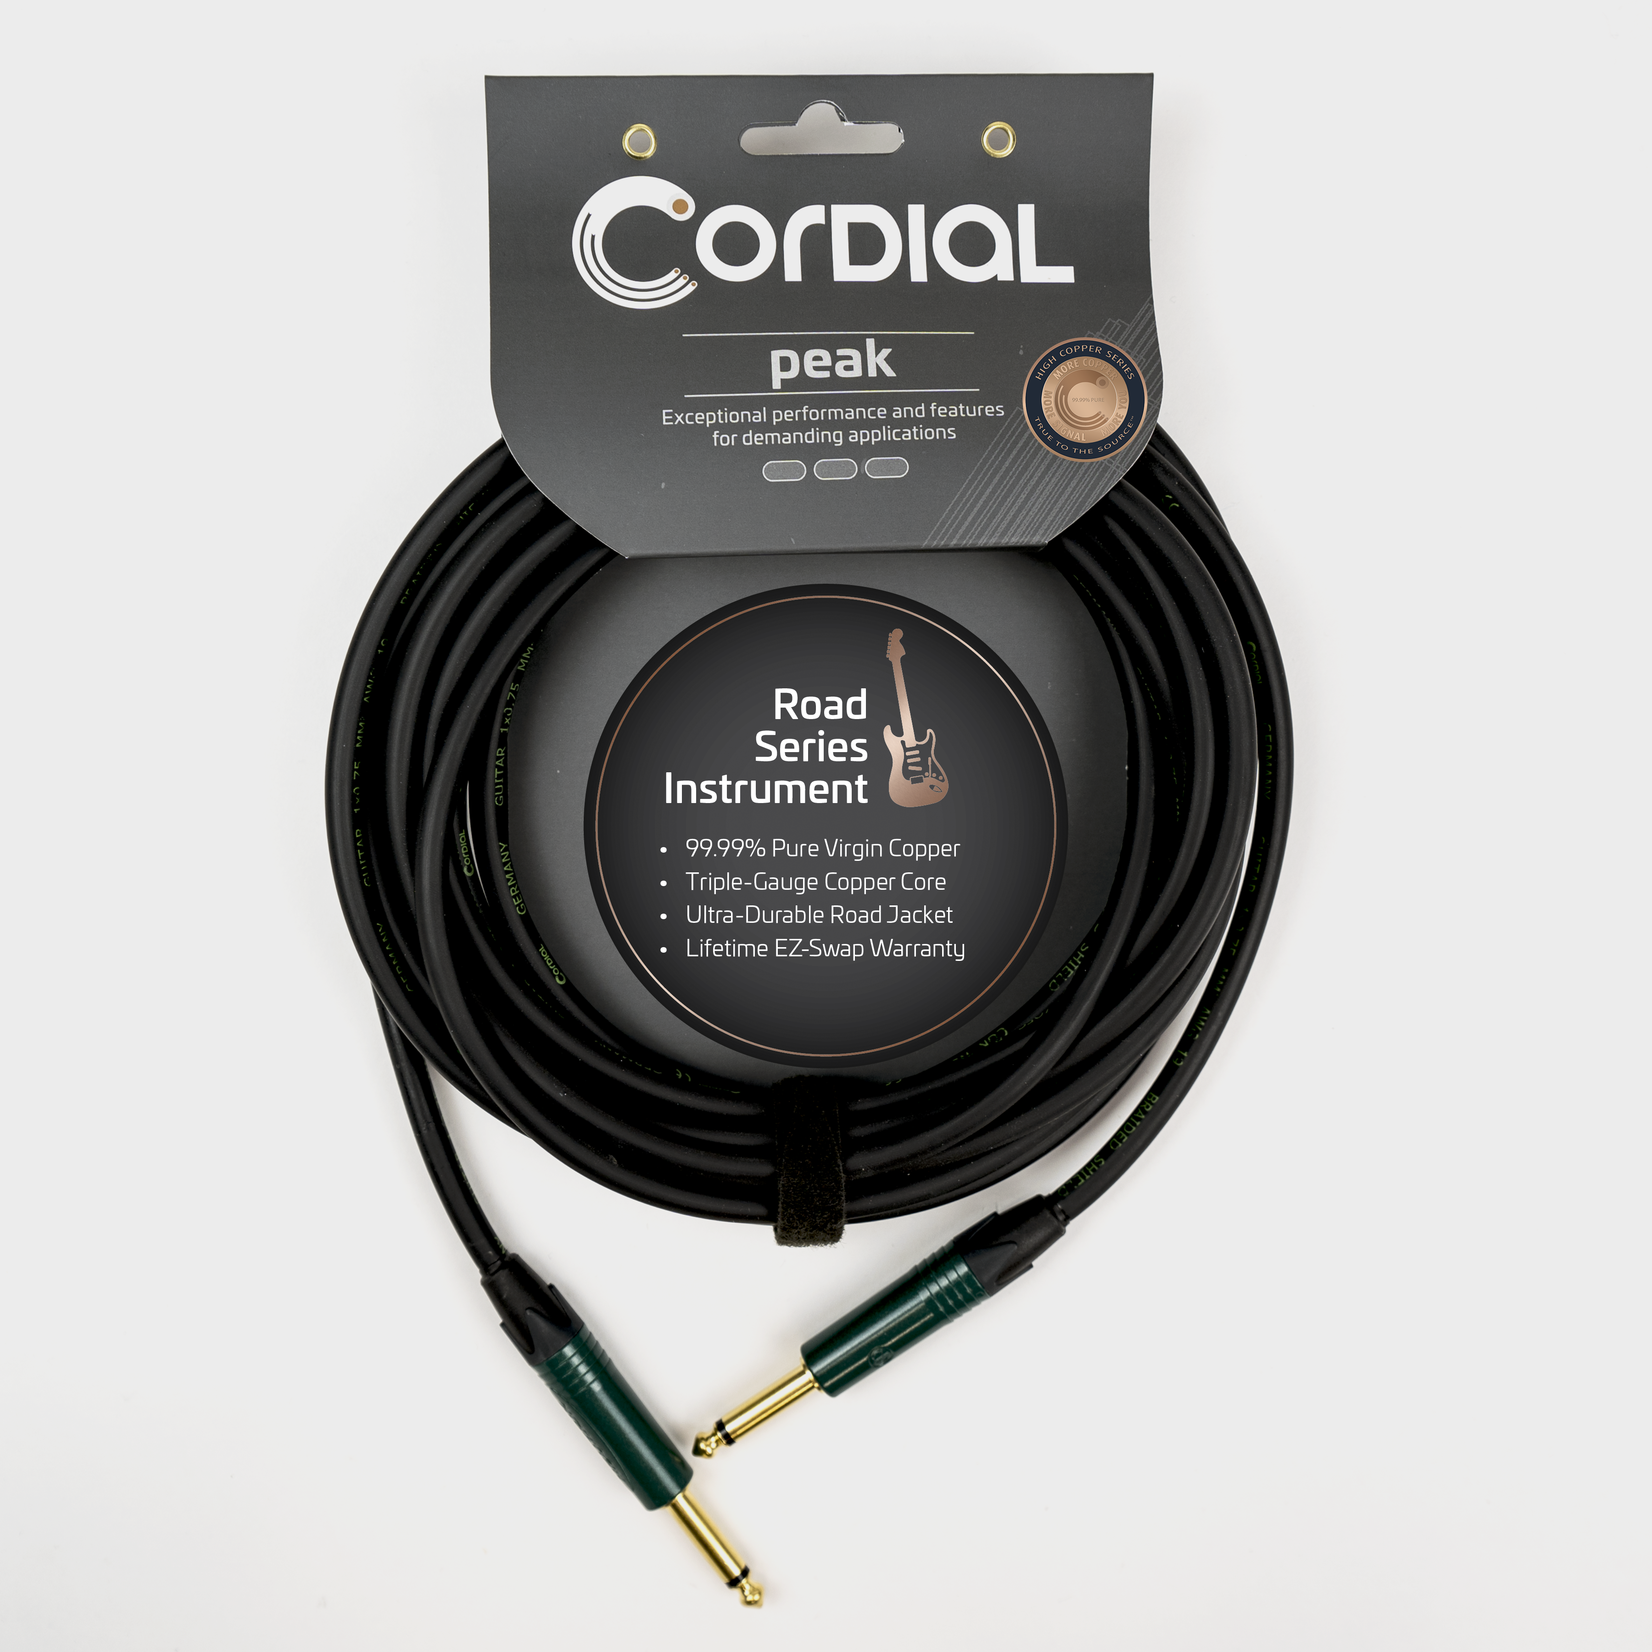 """Cordial Cables Cordial Premium High-Copper Instrument Cable with Road Wrap, Peak Series1/4'' Straight to 1/4'' Right Angle Phone Plugs with Enhanced Road Toughness (6m / 20' 1/4"""" Straight to Straight)"""